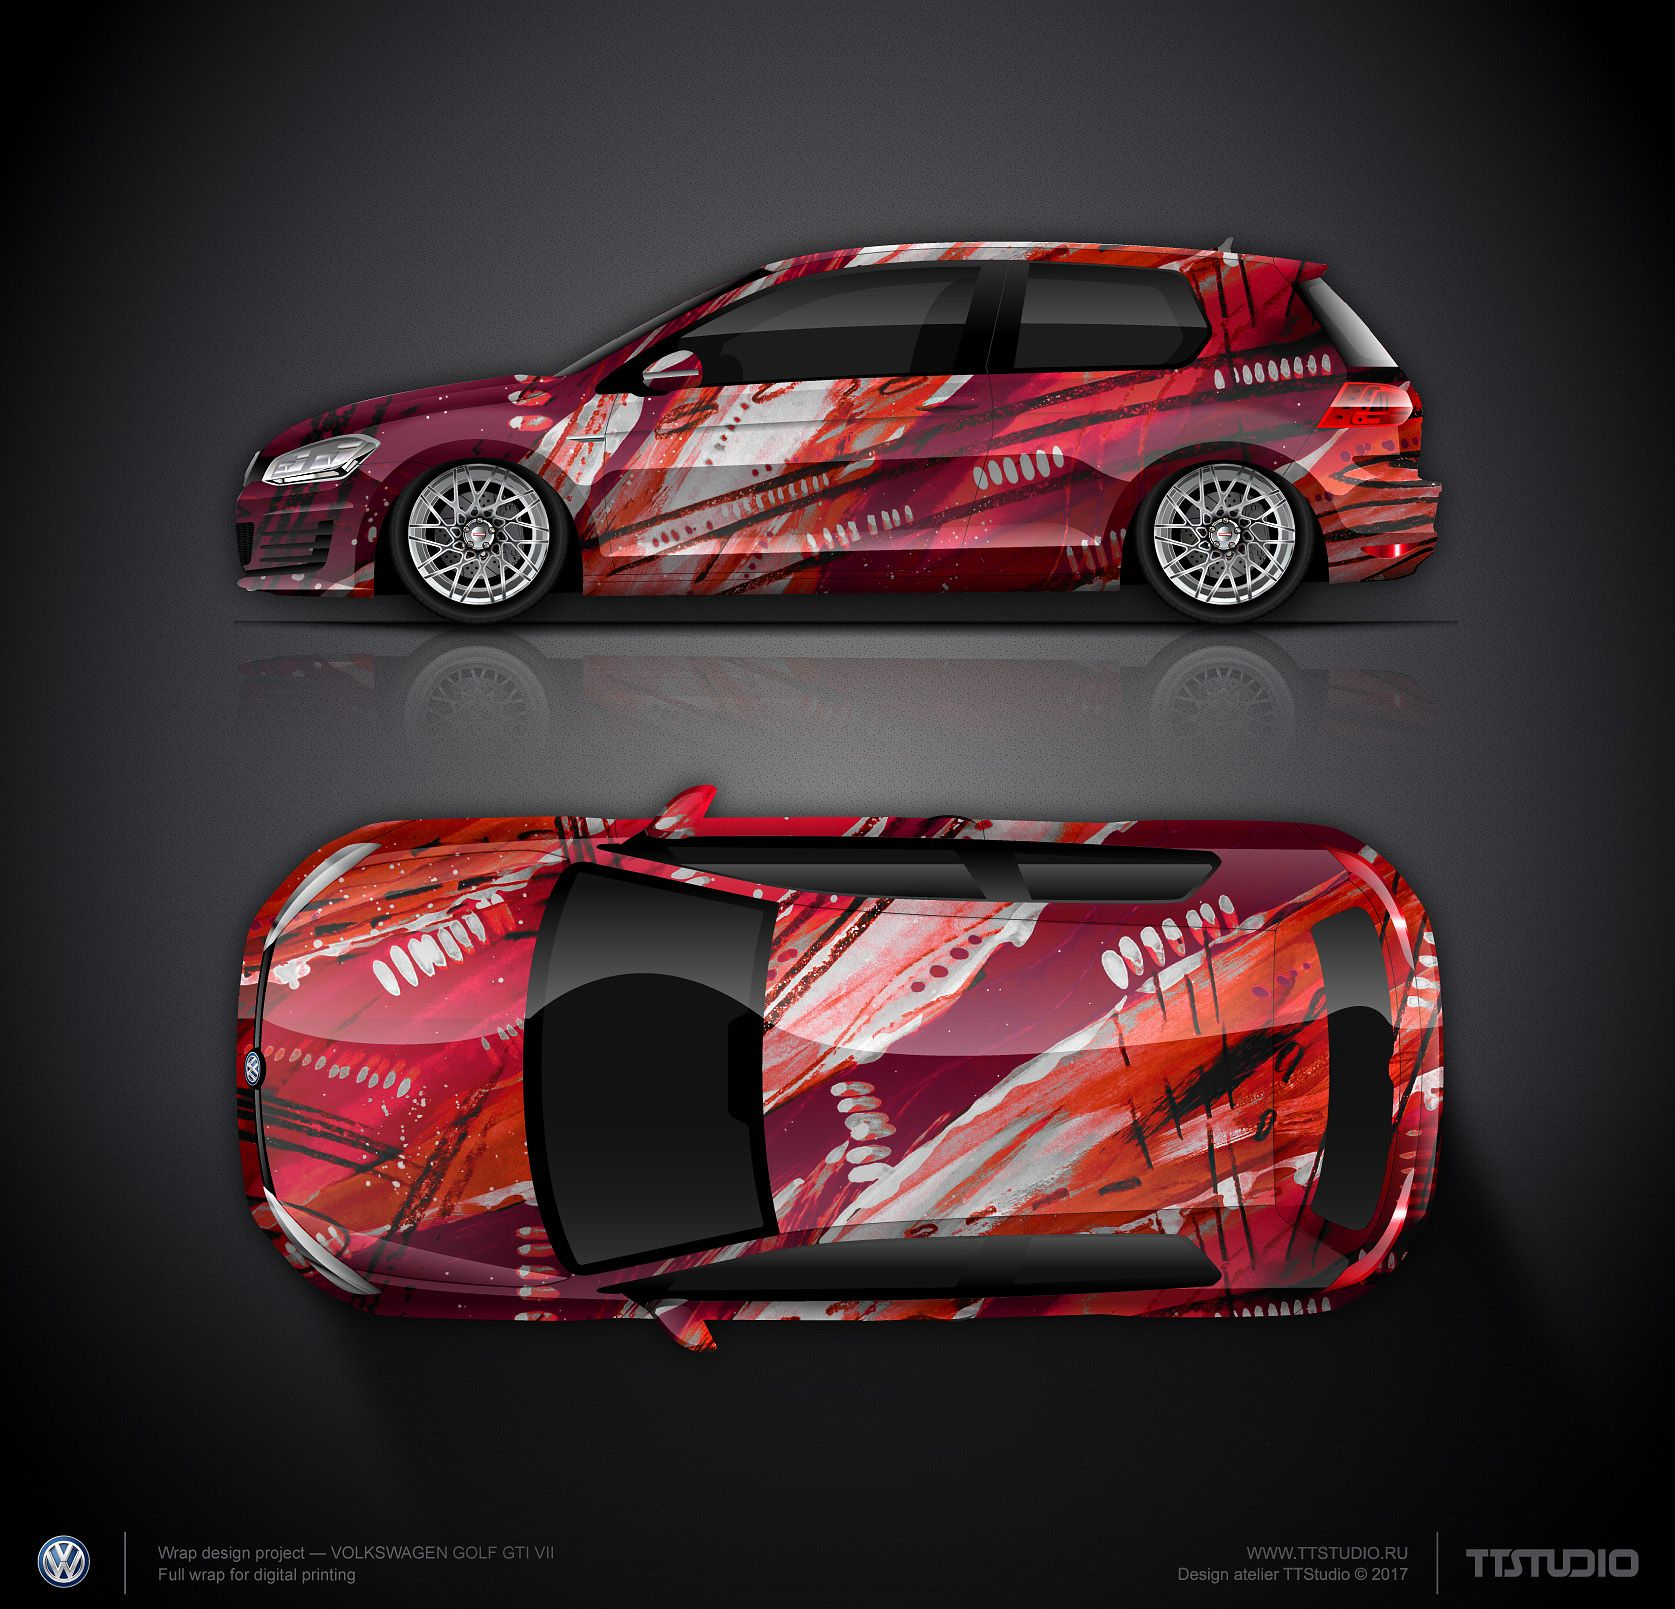 Auto Good Image: Design Concept #7 Red Art Car For VW Golf GTI